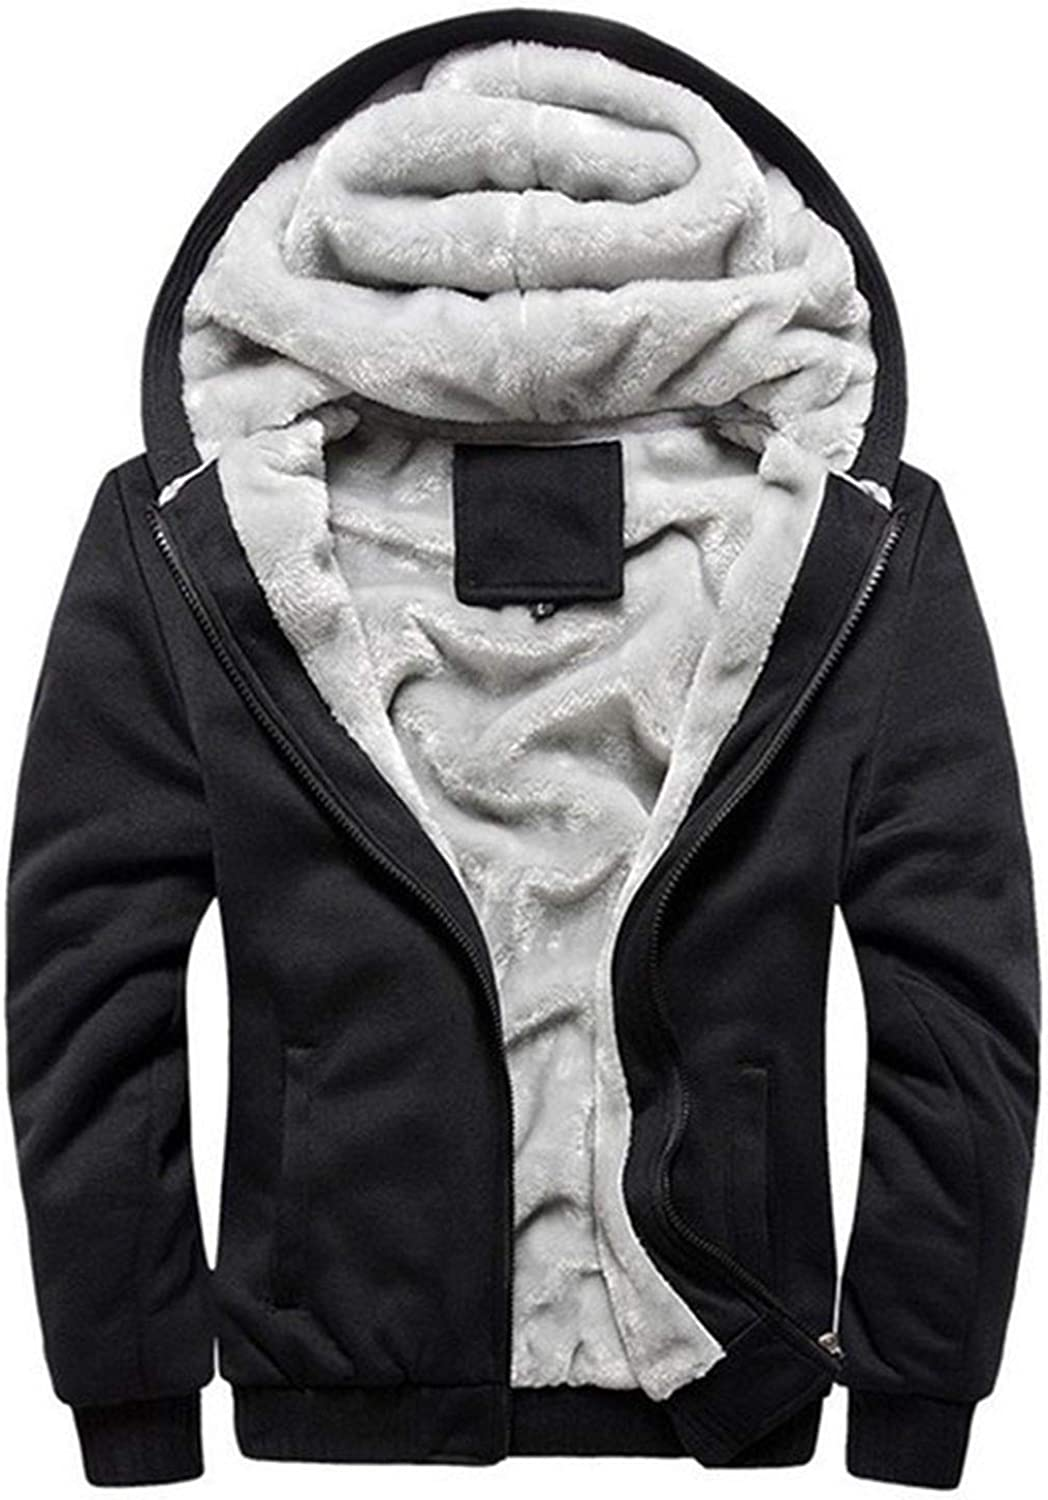 Don't mention the past Tracksuit Men Sporting Fleece Thick Hooded Casual Track Suit Men Jacket+Pant Warm Fur Inside Winter